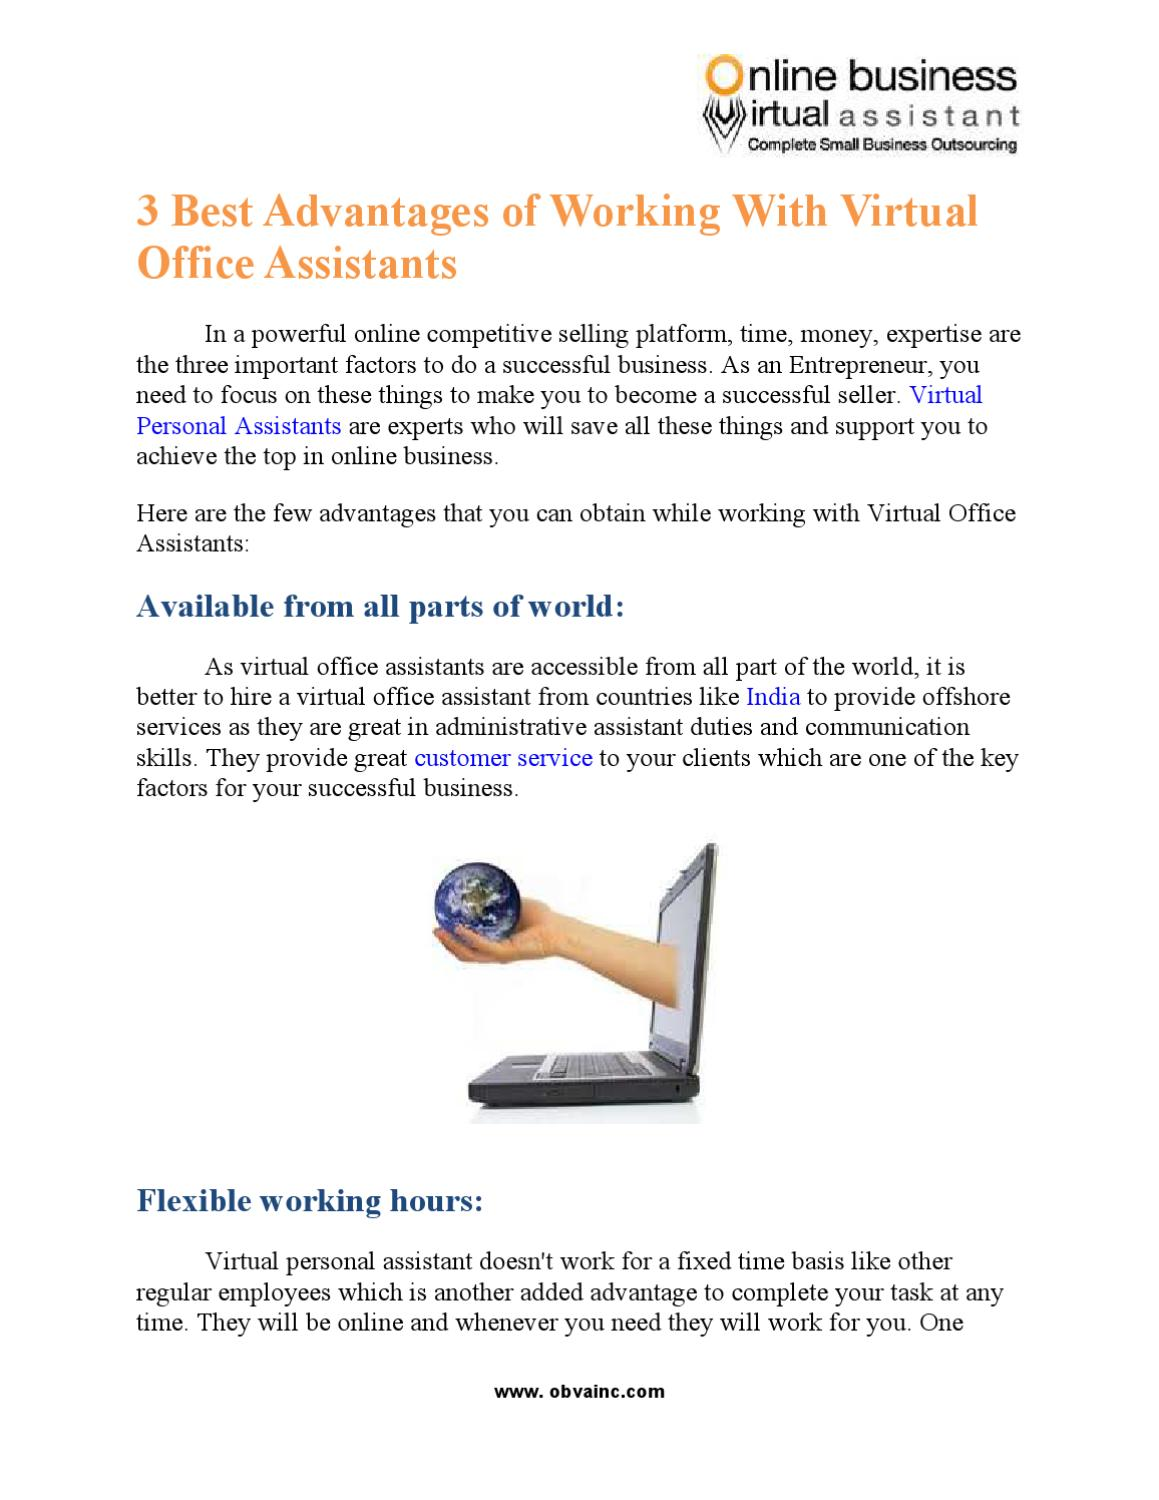 3 Best Advantages Of Working With Virtual Office Assistants By Obva